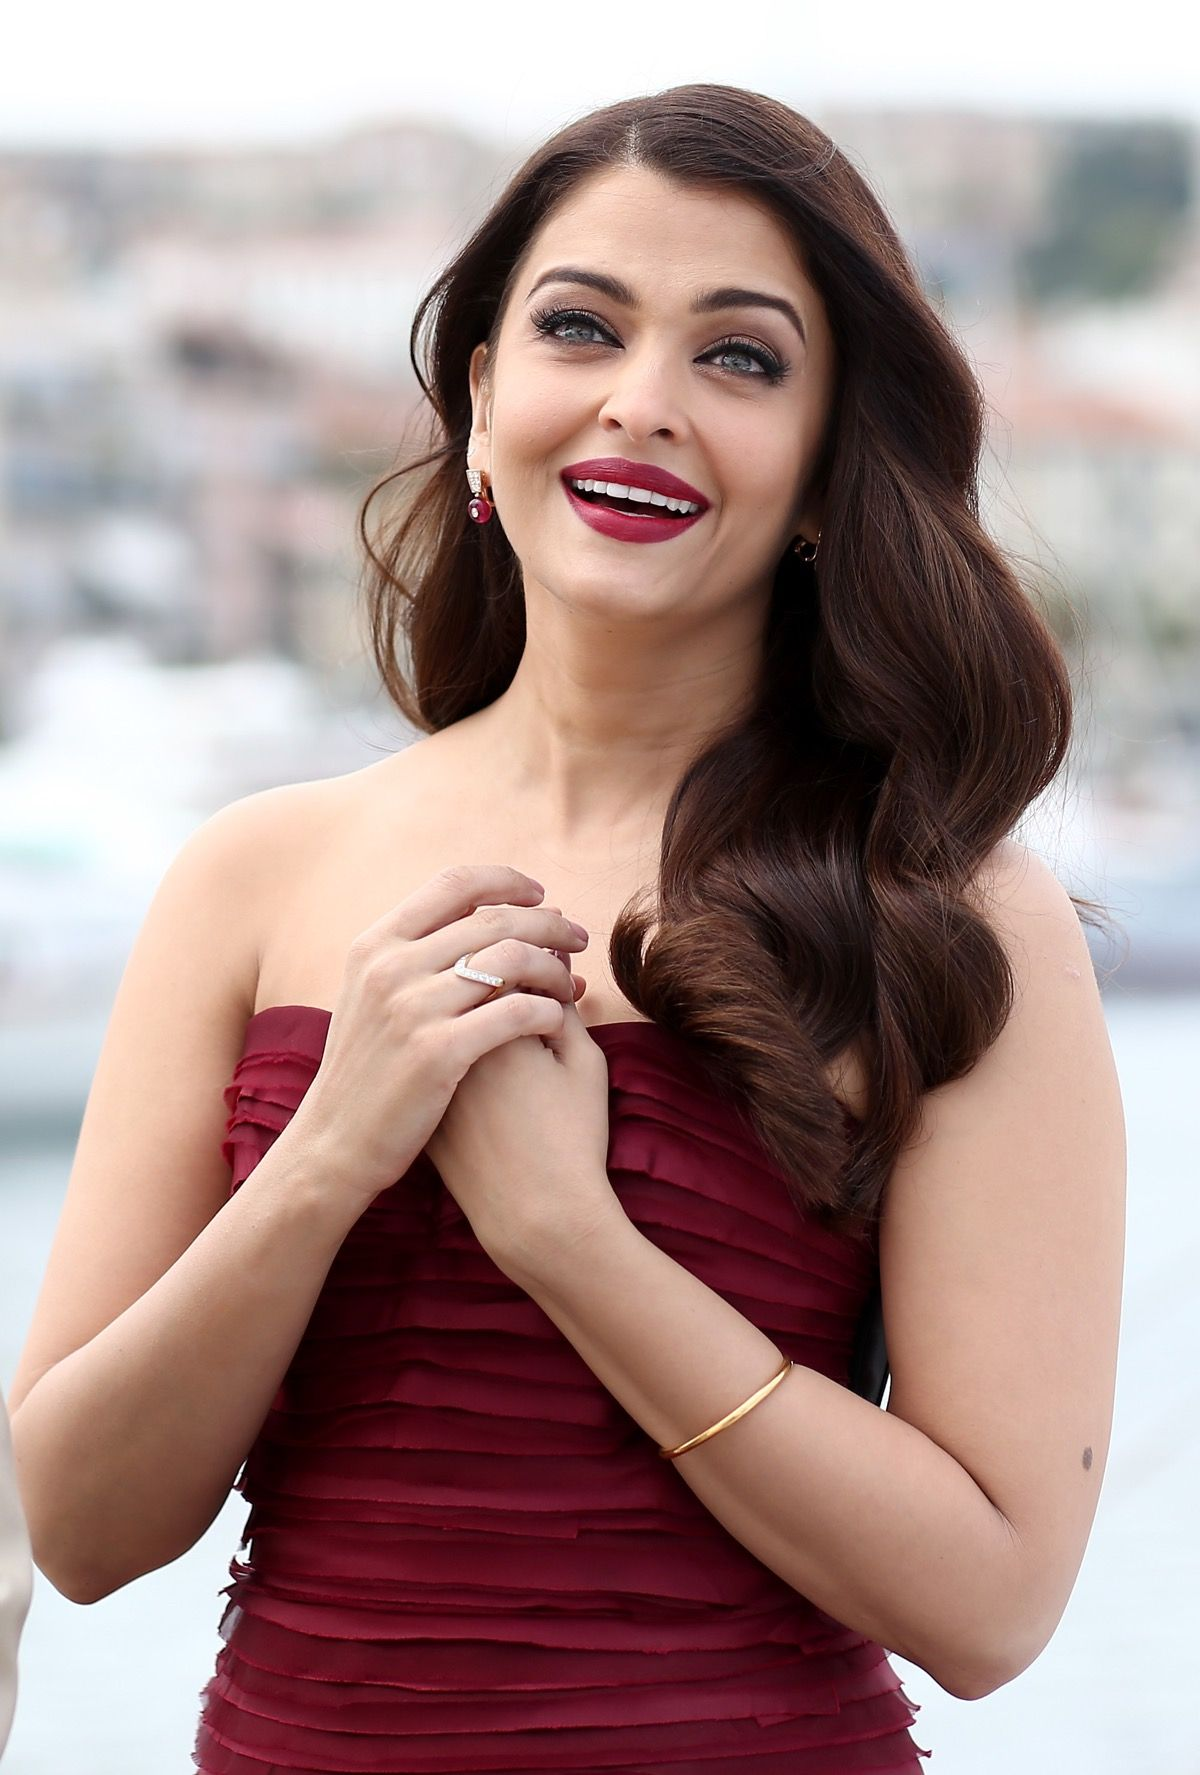 aishwarya rai bachchan filmsaishwarya rai bachchan vk, aishwarya rai bachchan kimdir, aishwarya rai bachchan dance performance, aishwarya rai bachchan filme, aishwarya rai bachchan family, aishwarya rai bachchan imdb, aishwarya rai bachchan interview, aishwarya rai bachchan home video, aishwarya rai bachchan songs, aishwarya rai bachchan instagram, aishwarya rai bachchan biografia, aishwarya rai bachchan films, aishwarya rai bachchan official instagram, aishwarya rai bachchan wikipedia, aishwarya rai bachchan filmleri, aishwarya rai bachchan daughter, aishwarya rai bachchan facebook, aishwarya rai bachchan facebook official, aishwarya rai bachchan youtube, aishwarya rai bachchan illuminati